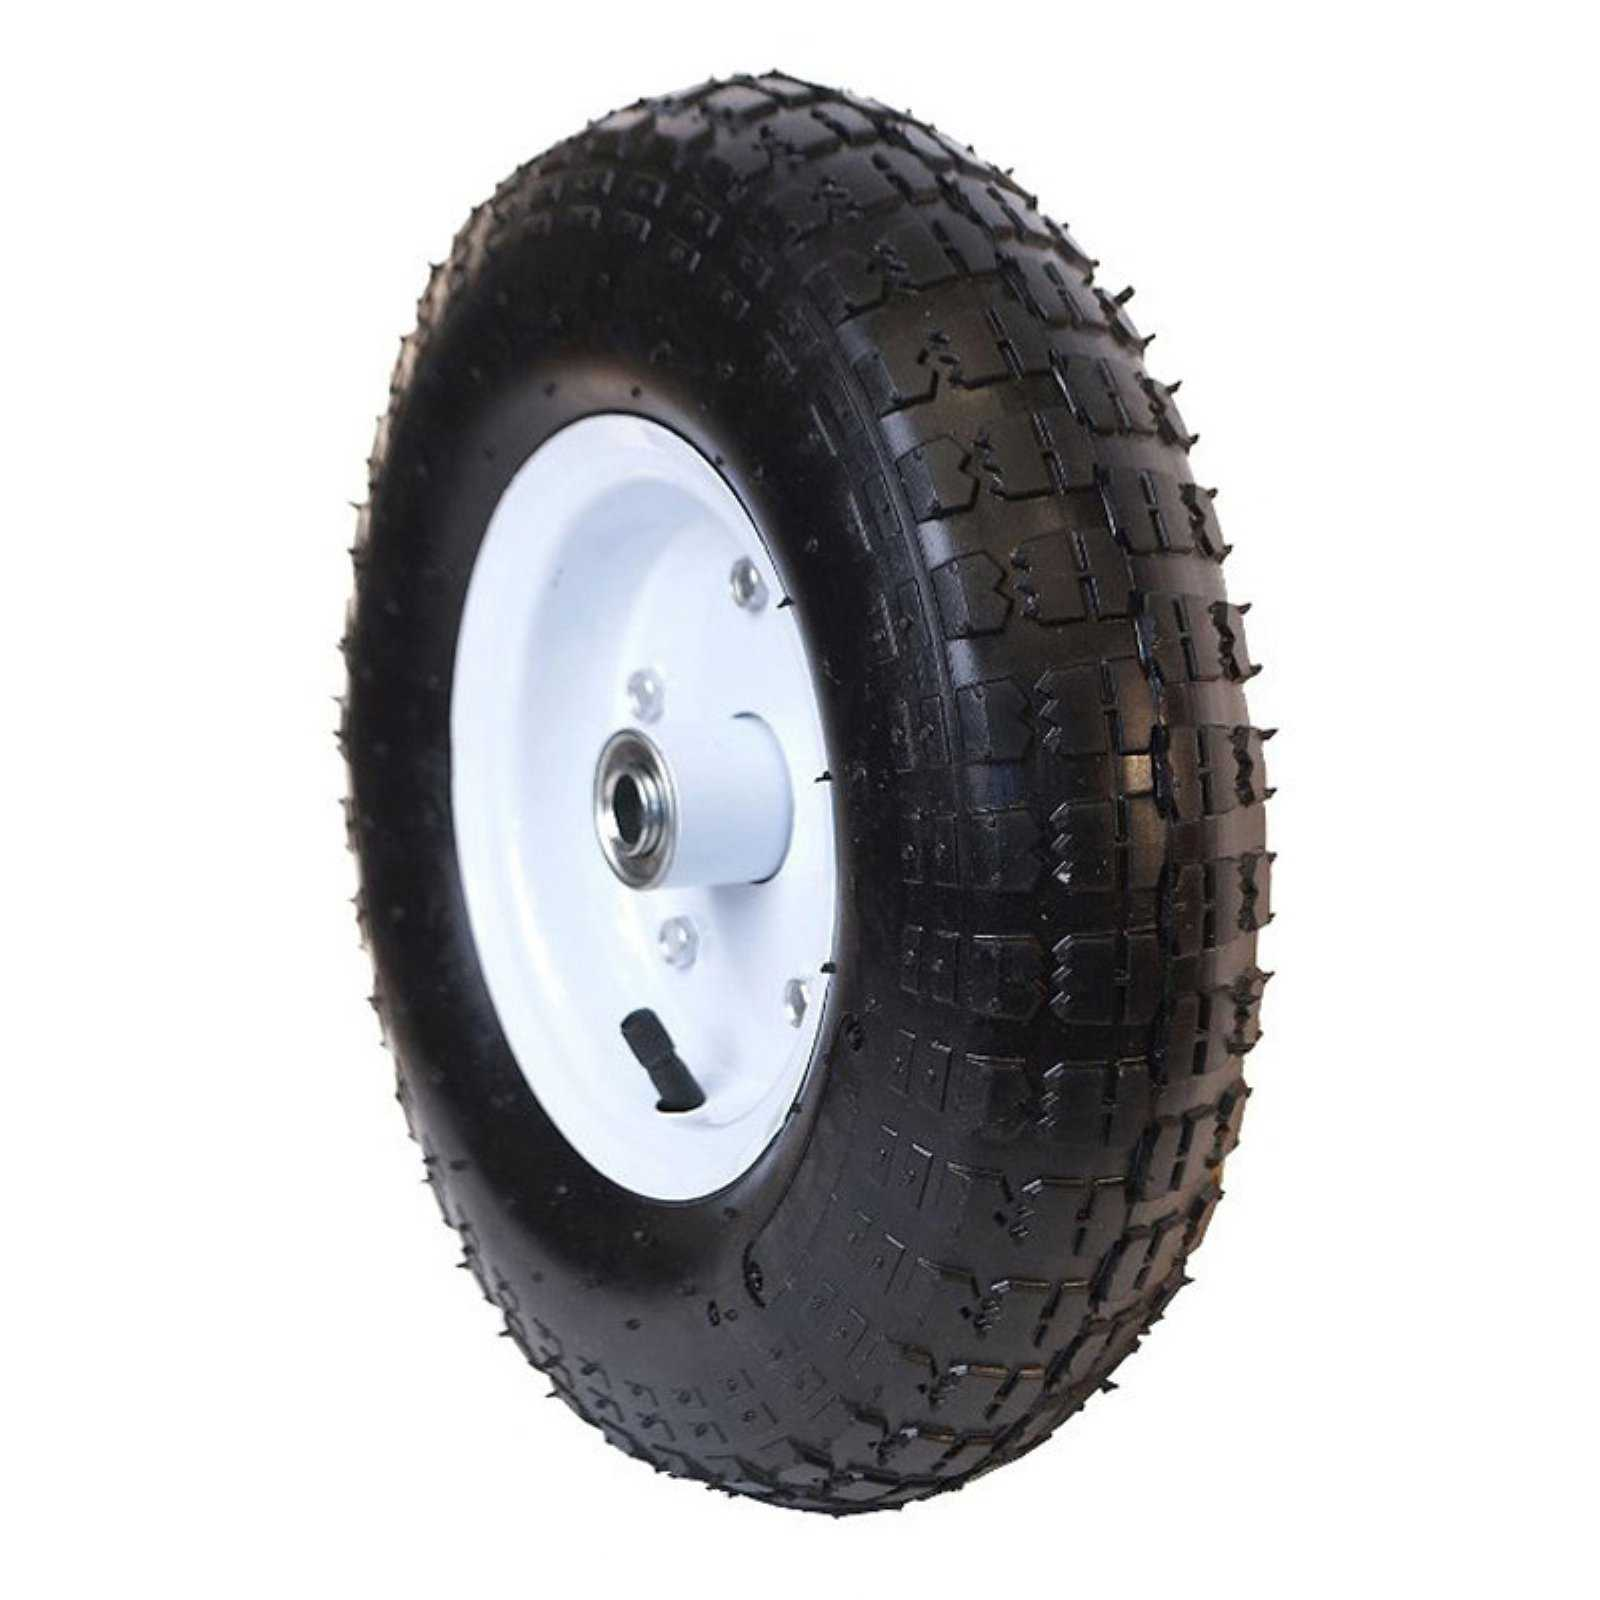 ALEKO WAP10 Pneumatic Turf Replacement Wheel for Wheelbarrow 10 Inch Air Filled Turf Tire for Hand Trucks and Lawn Carts, Black Tire White Rim